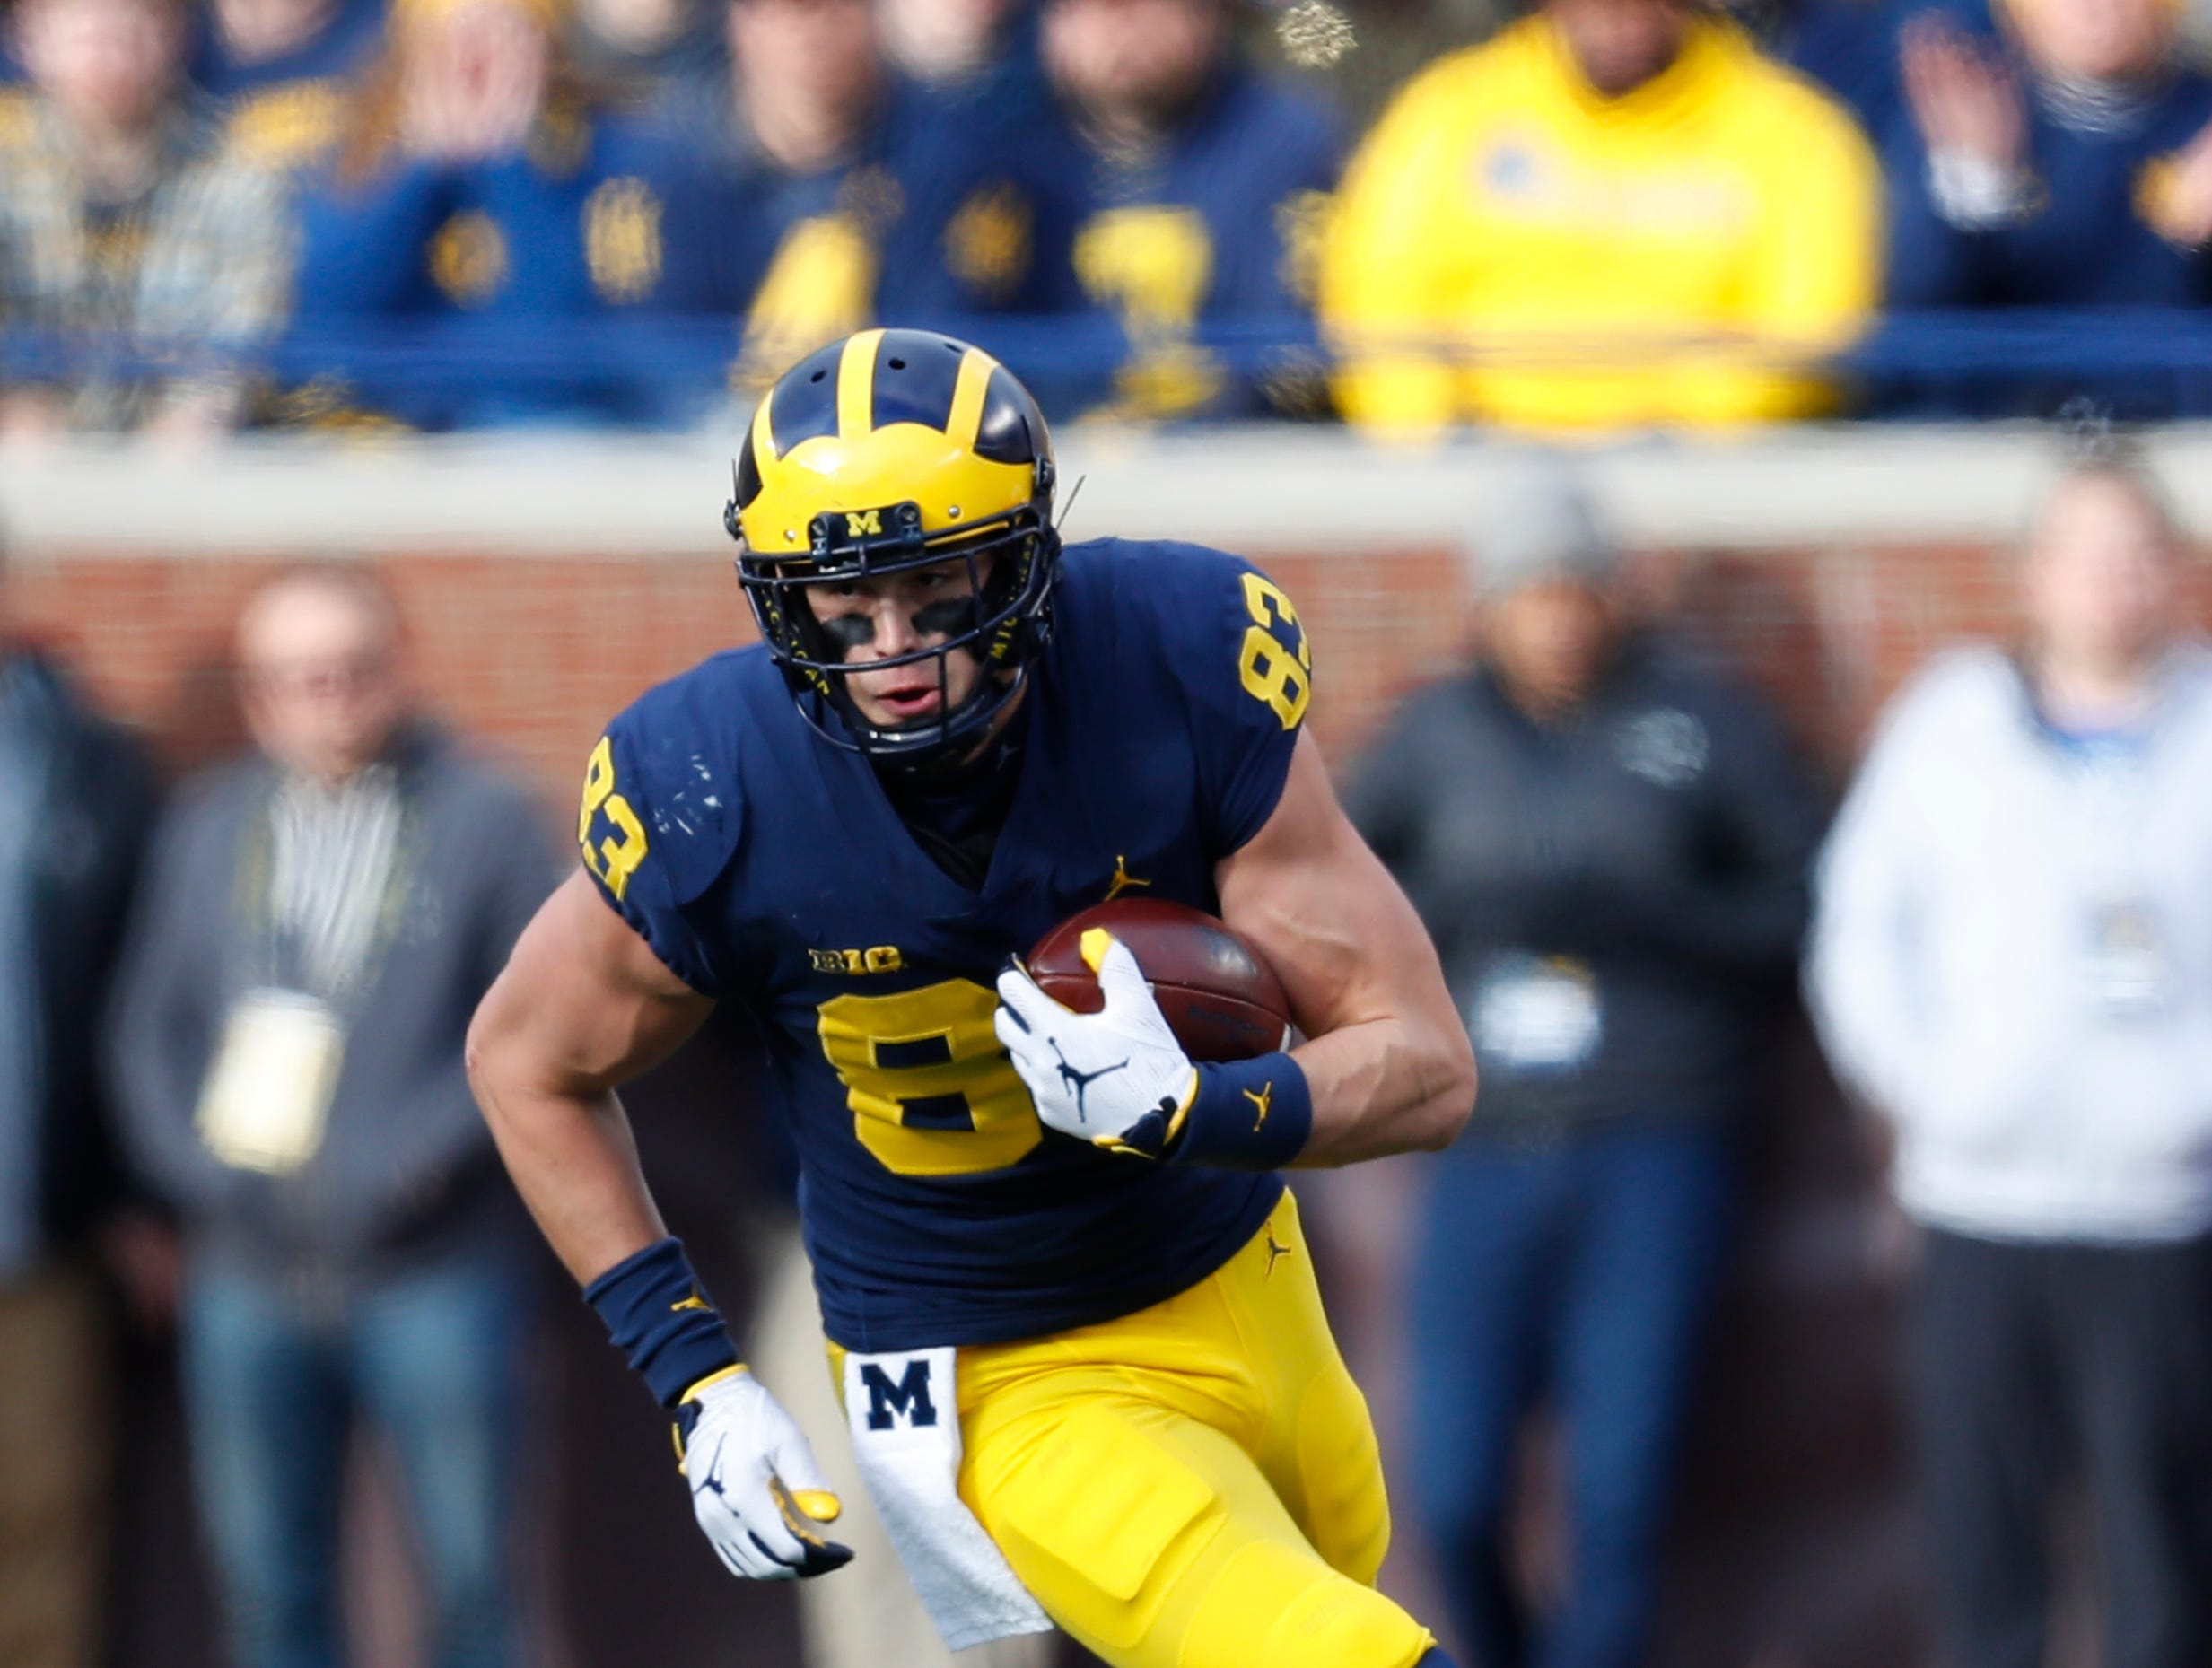 Michigan tight end Zach Gentry (83) runs after a catch against Penn State in the first half of an NCAA college football game in Ann Arbor, Mich., Saturday, Nov. 3, 2018. (AP Photo/Paul Sancya)